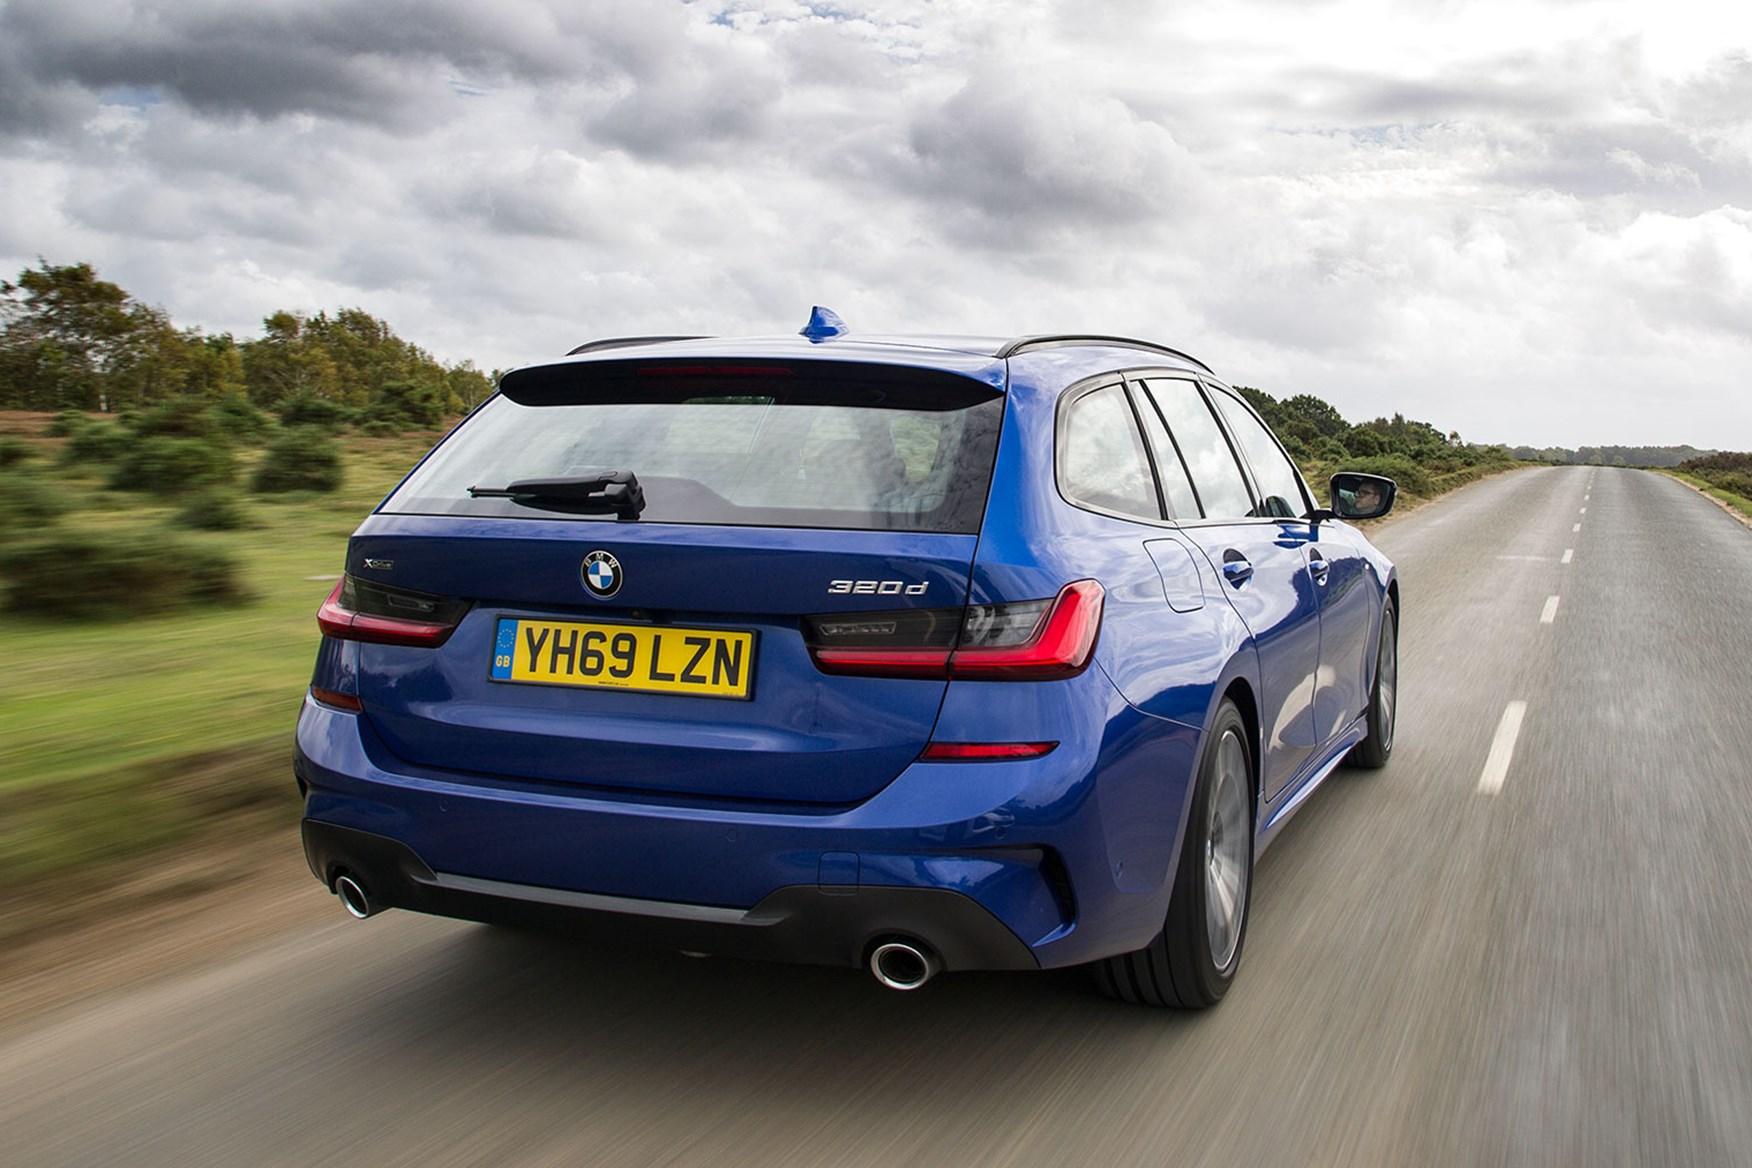 New Bmw 3 Series Touring Review 320d And 330d Estates Driven In Uk Car Magazine